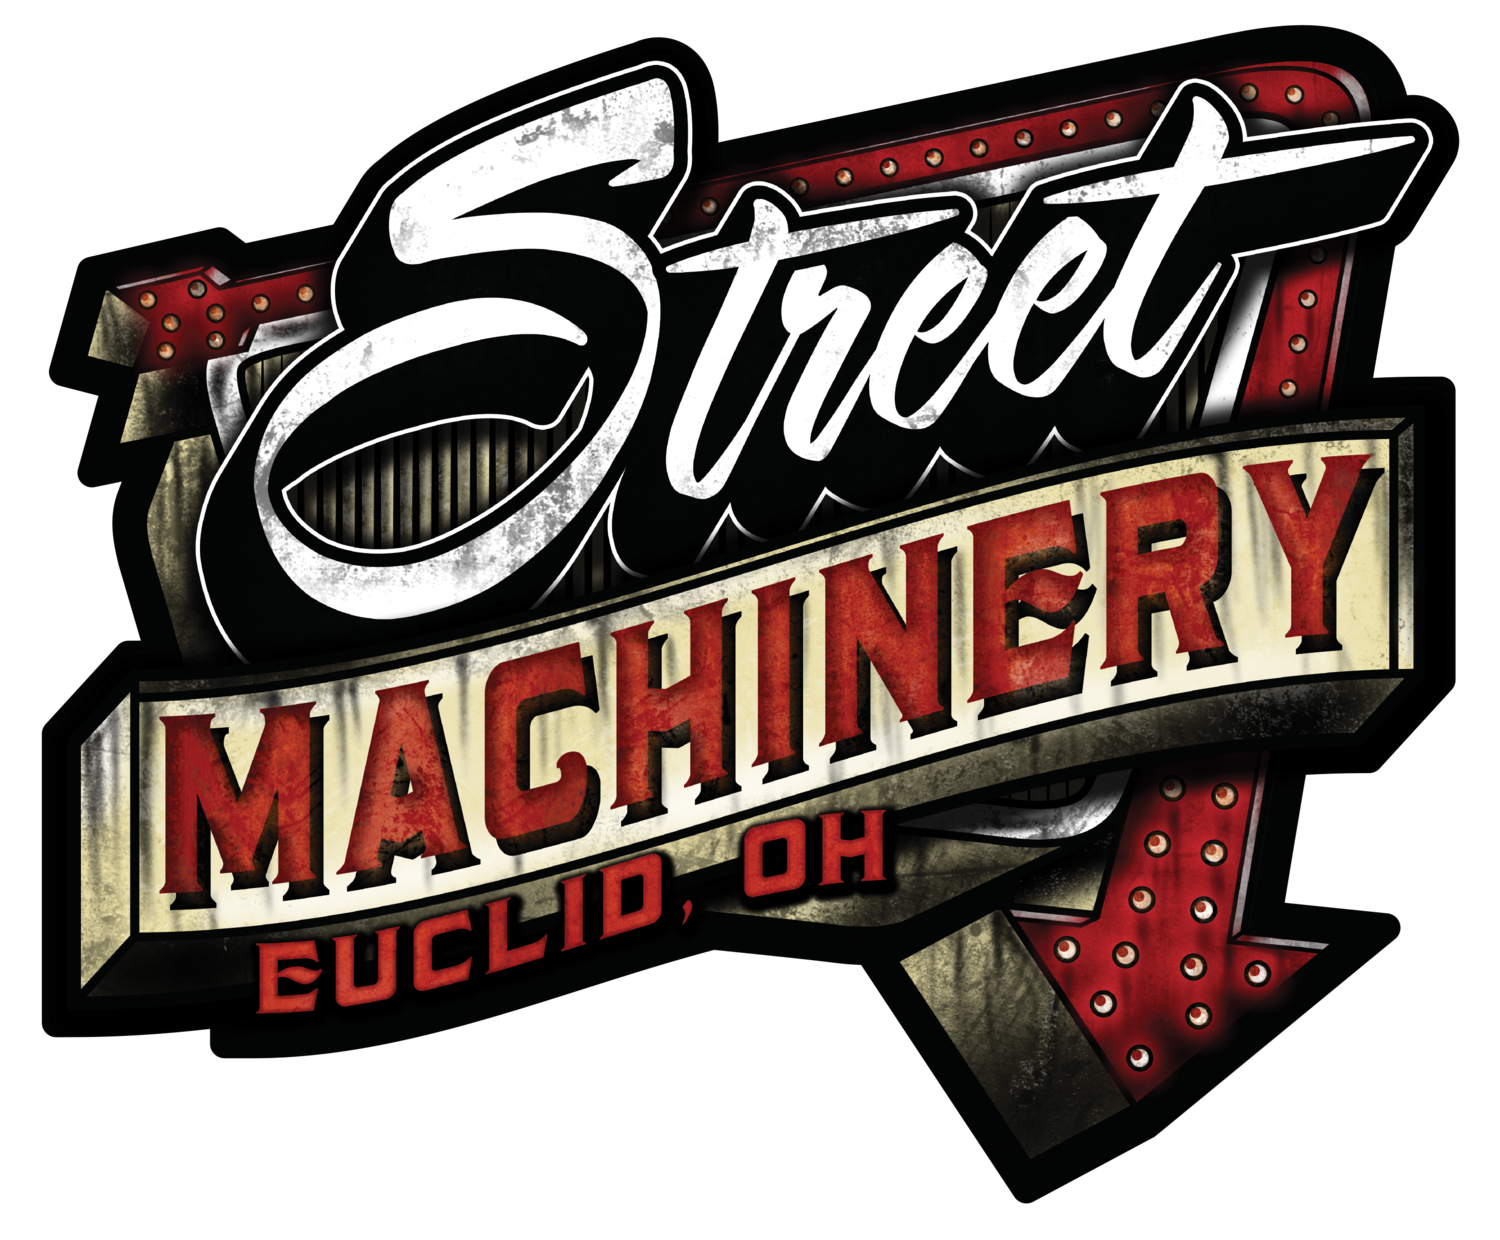 Street Machinery